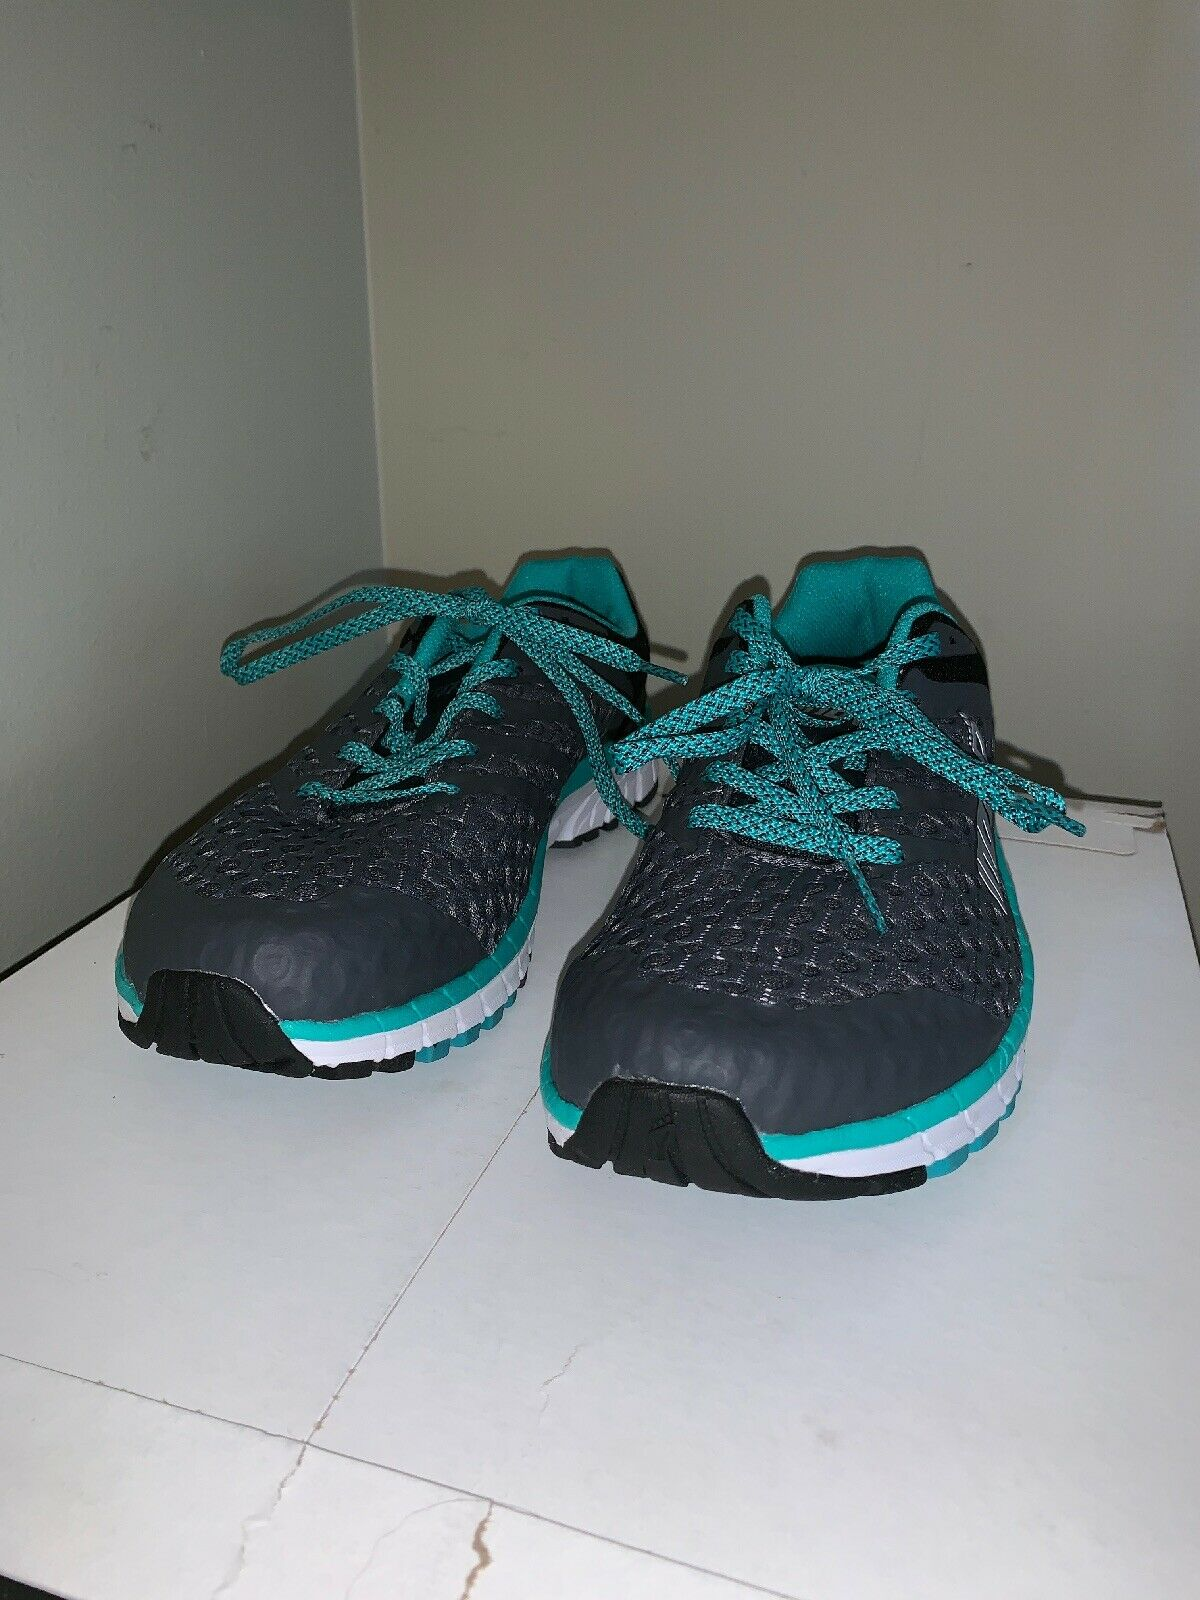 New Inov8 ROADCLAW 275 V2  Women's Running shoes - size 8.5